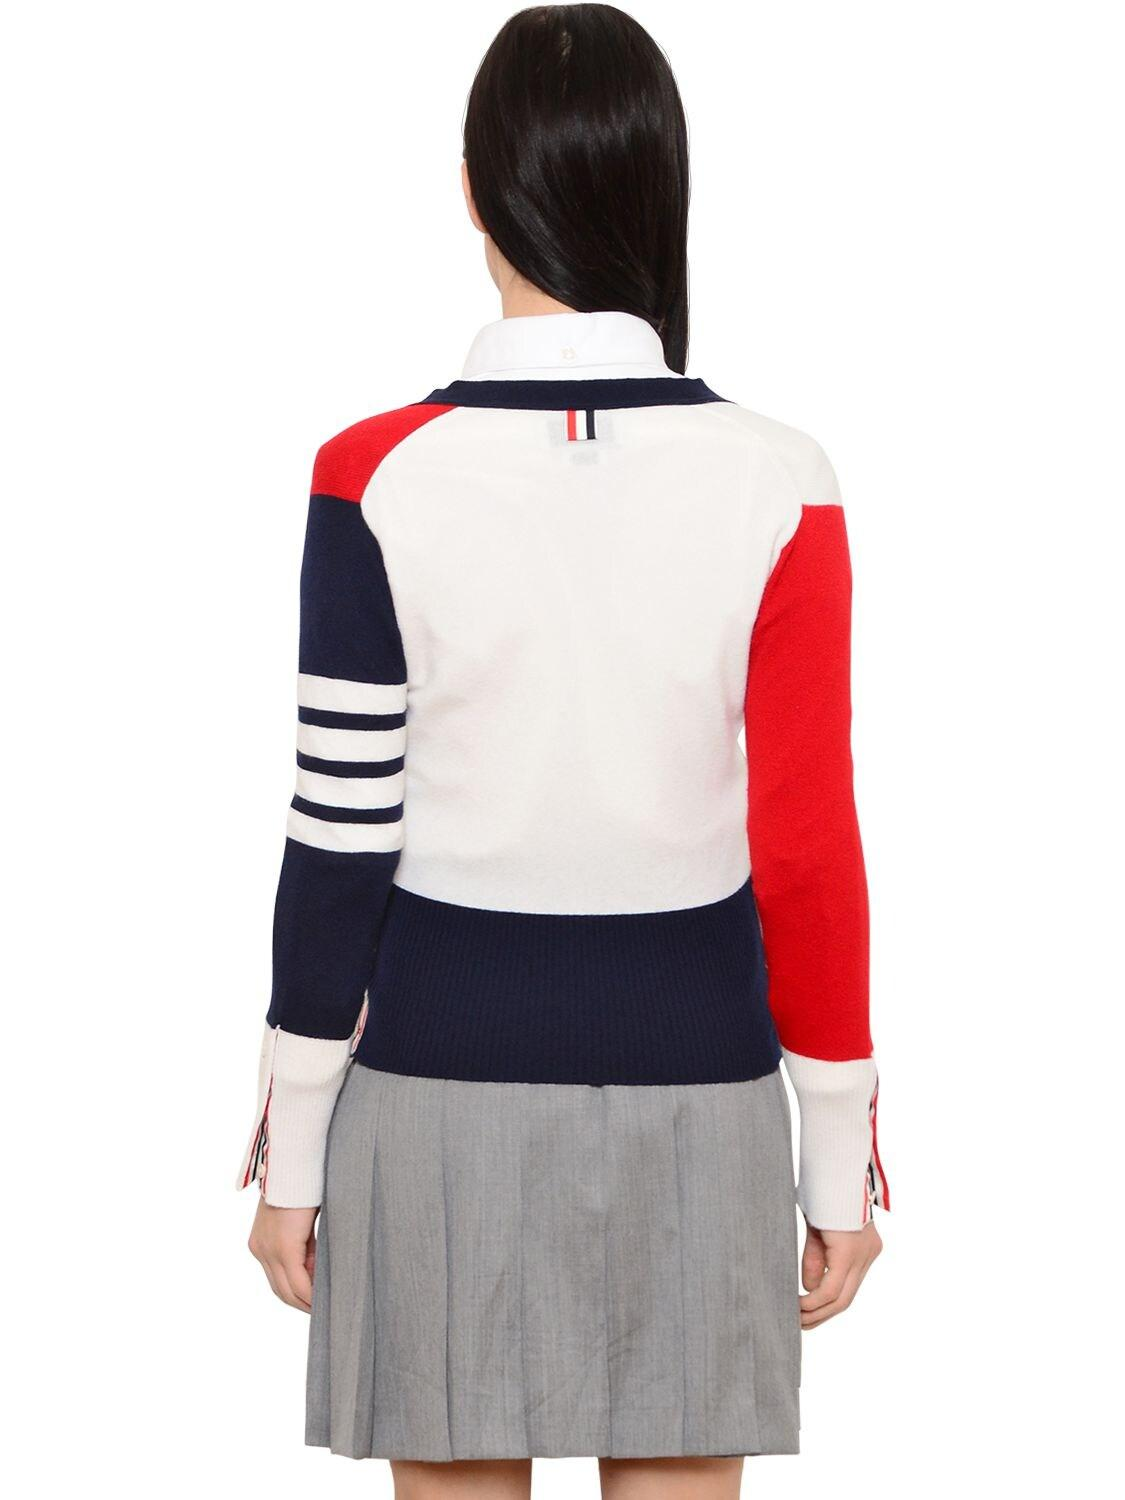 Thom Browne Color Blocked Cashmere Knit Cardigan in Red